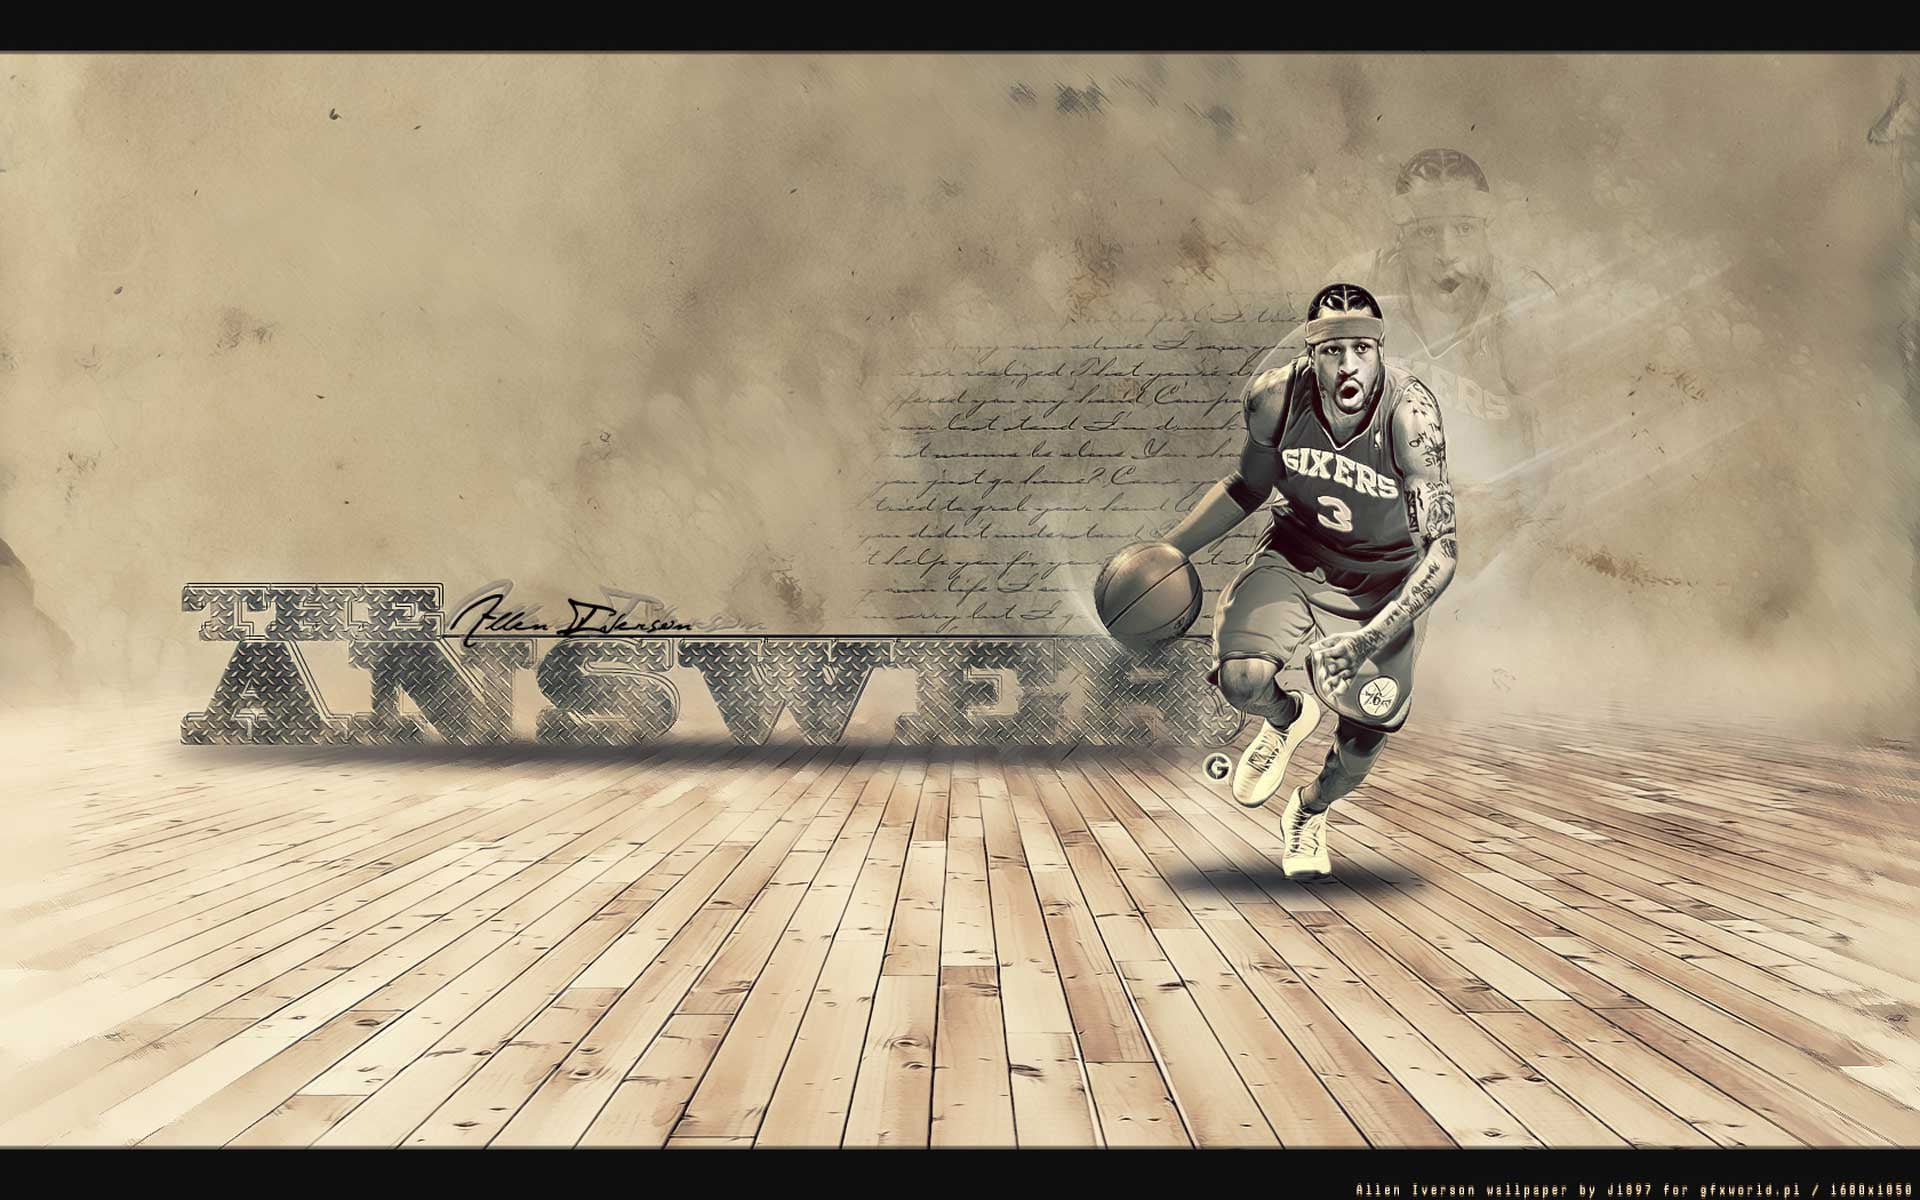 Cars So Cool Wallpaper For Computer 26 Allen Iverson Wallpapers Hd Free Download